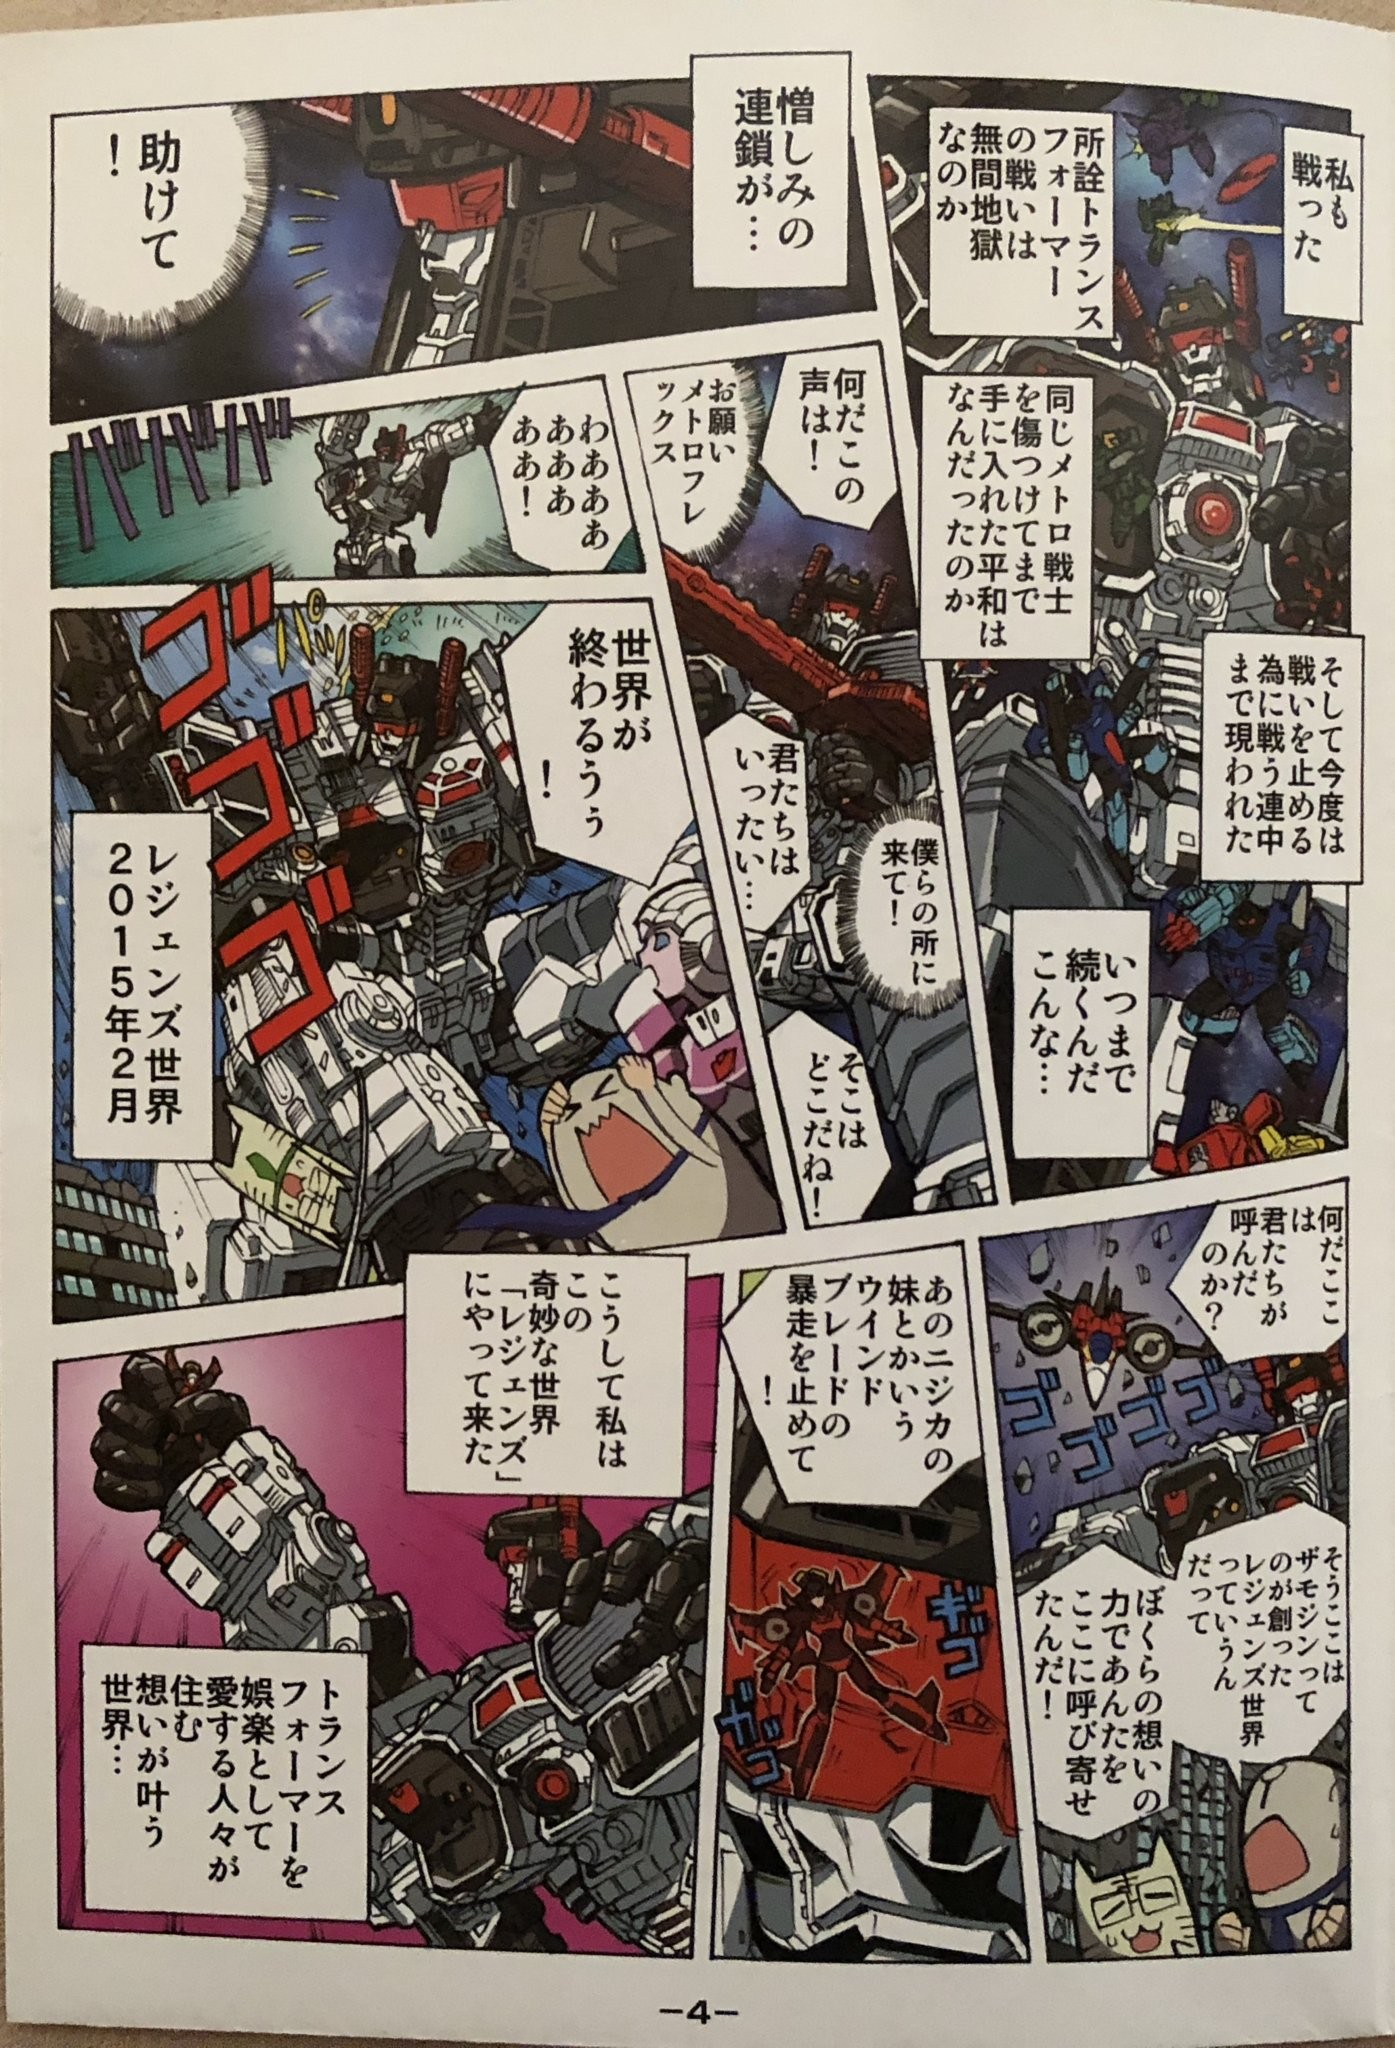 Transformers News: Takara Tomy Transformers Legends LG-EX Metroplex Pack-In Manga Images